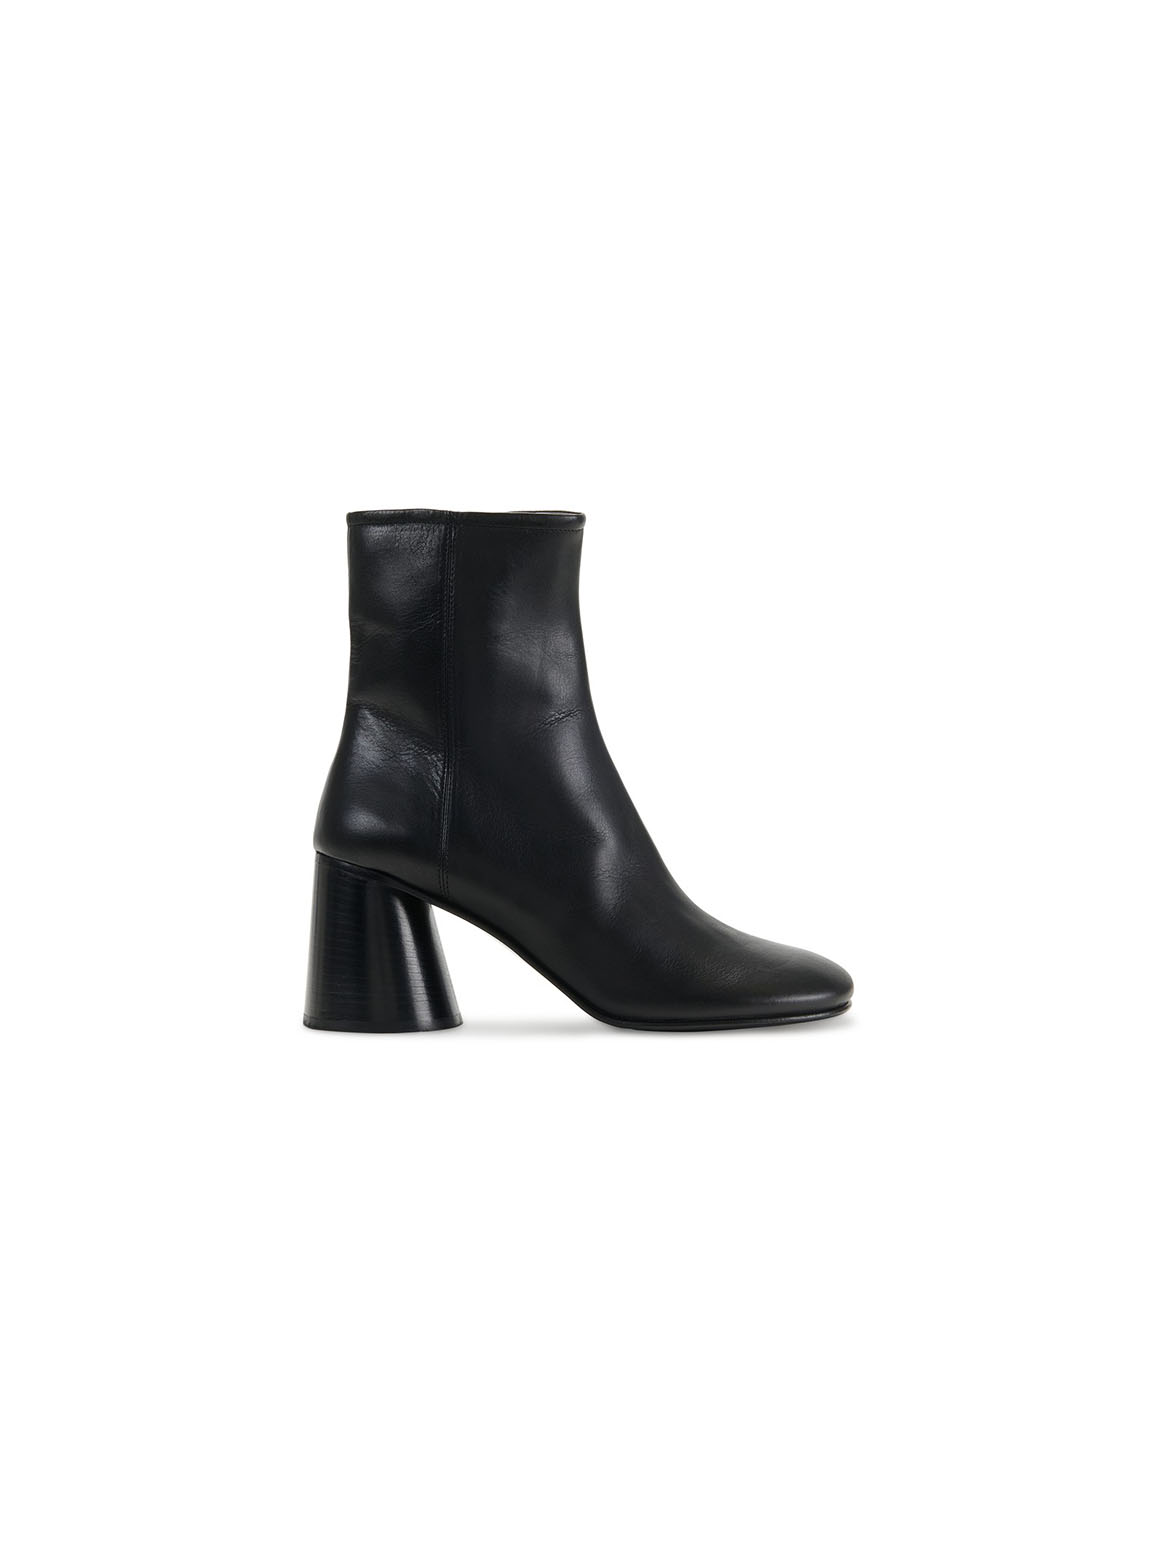 Buffie ankle boots